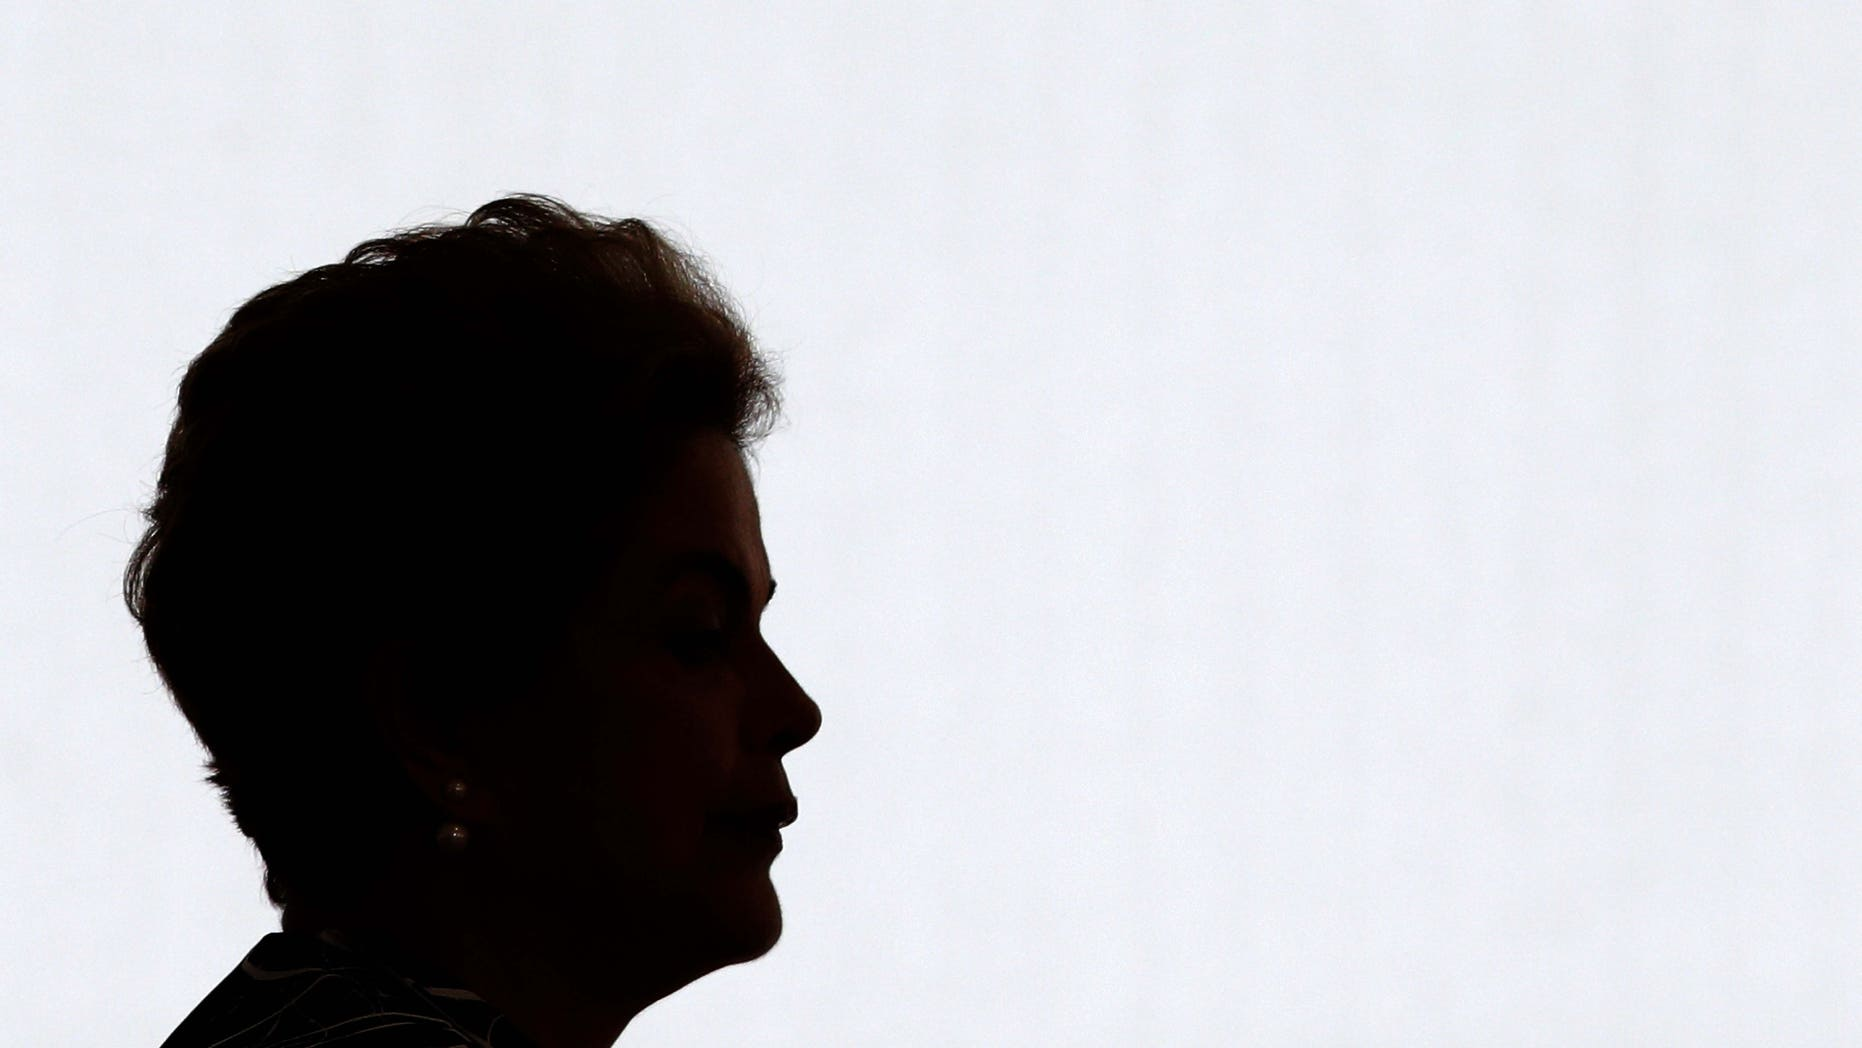 """Brazil's President Dilma Rousseff arrives for a ceremony to announce an addition to the government subsidized housing program coined """"My home, My life, at Planalto presidential palace in Brasilia, Brazil, Friday, May 6, 2016. Brazil's Senate impeachment commission has started deliberations over whether to recommend Rousseff's suspension to the full house. A Friday vote by a simple majority will send the case to all senators for a final decision Wednesday. (AP Photo/Eraldo Peres)"""